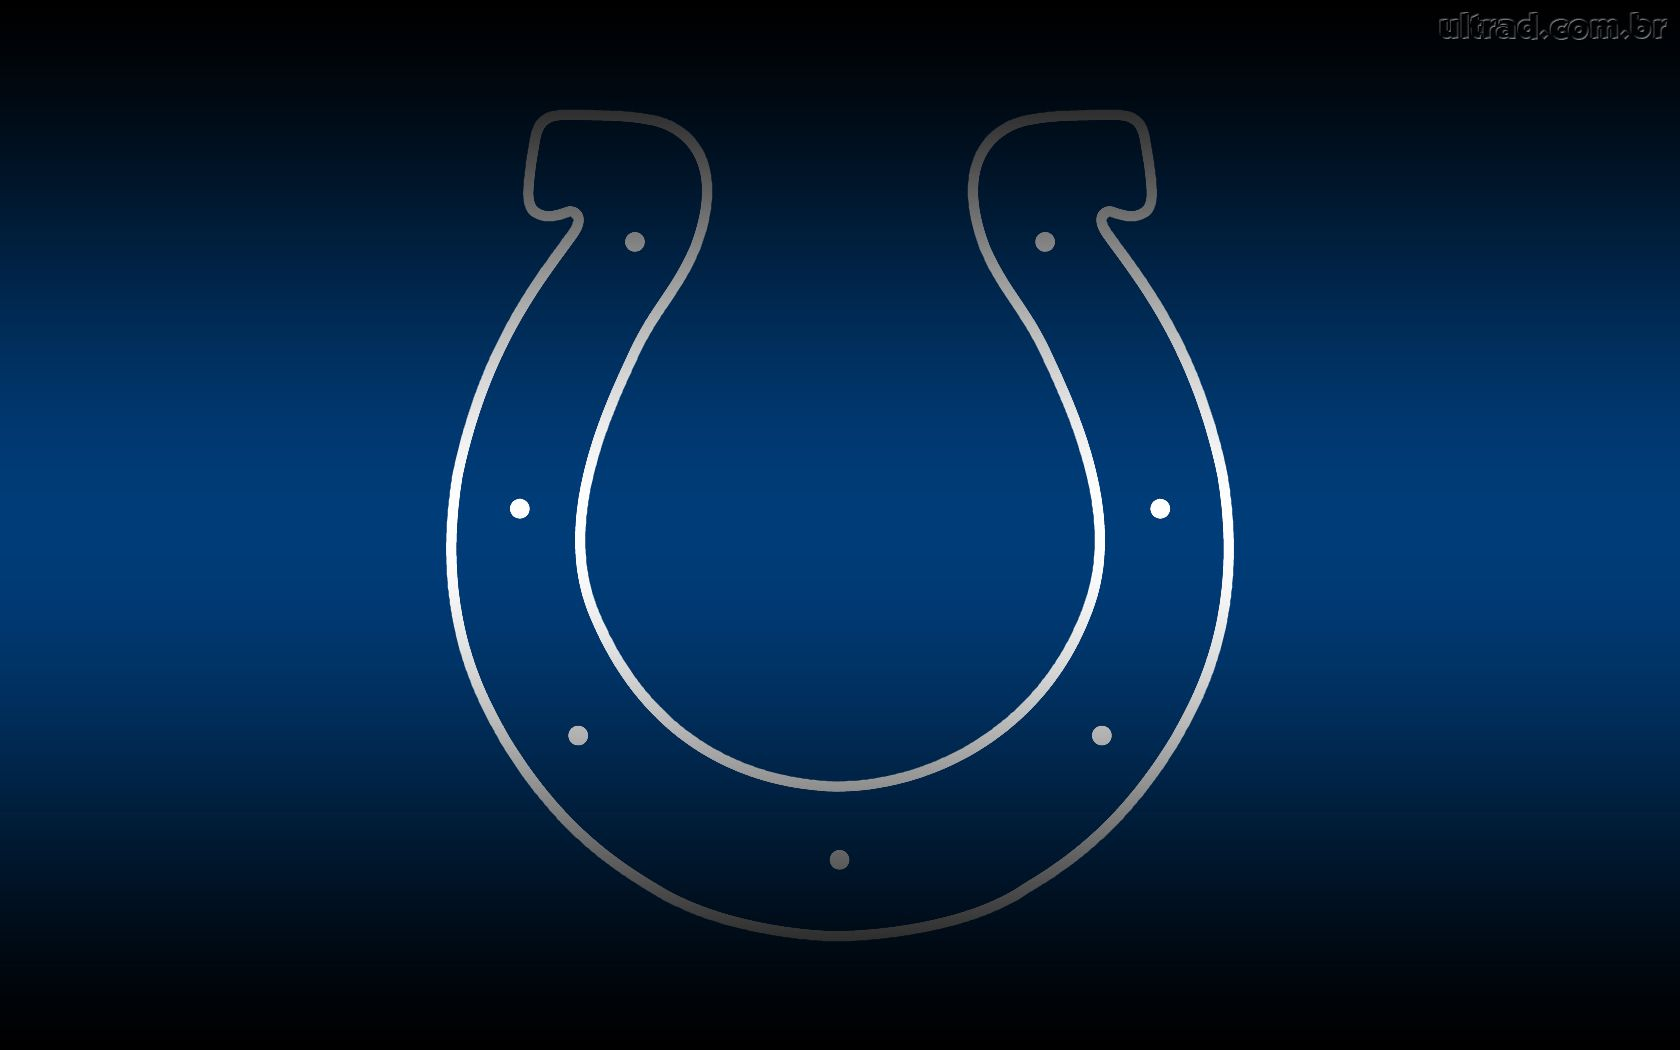 Colts wallpaper wallpapers Indianapolis Colts wallpapers 1680x1050